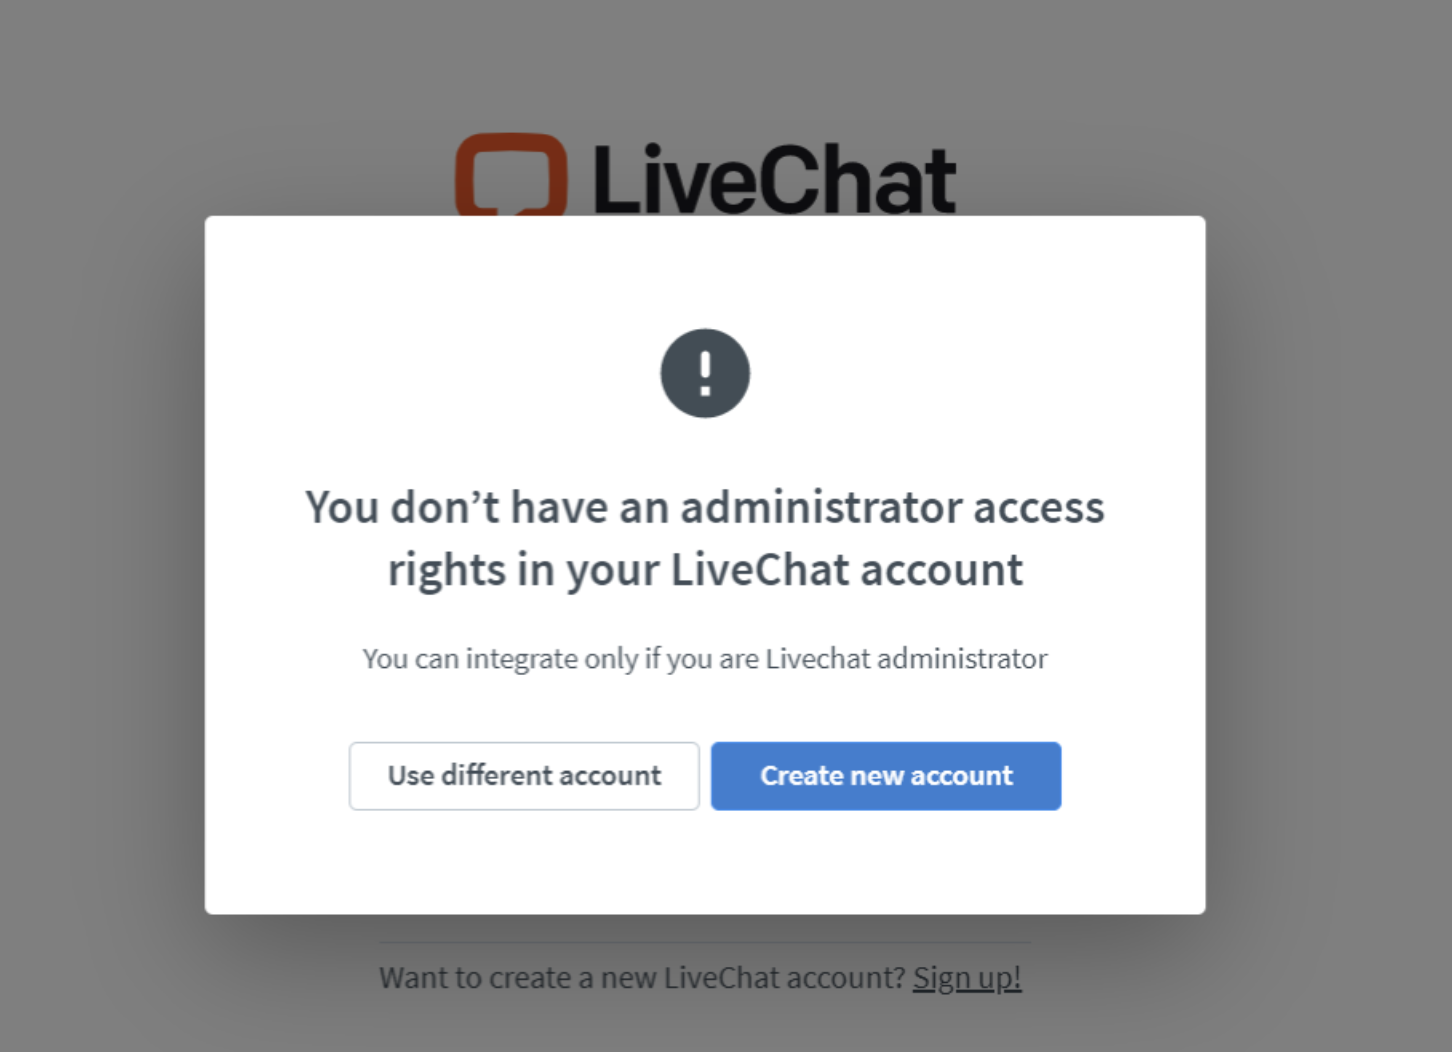 Error message: You don't have administrator access rights in your LiveChat account